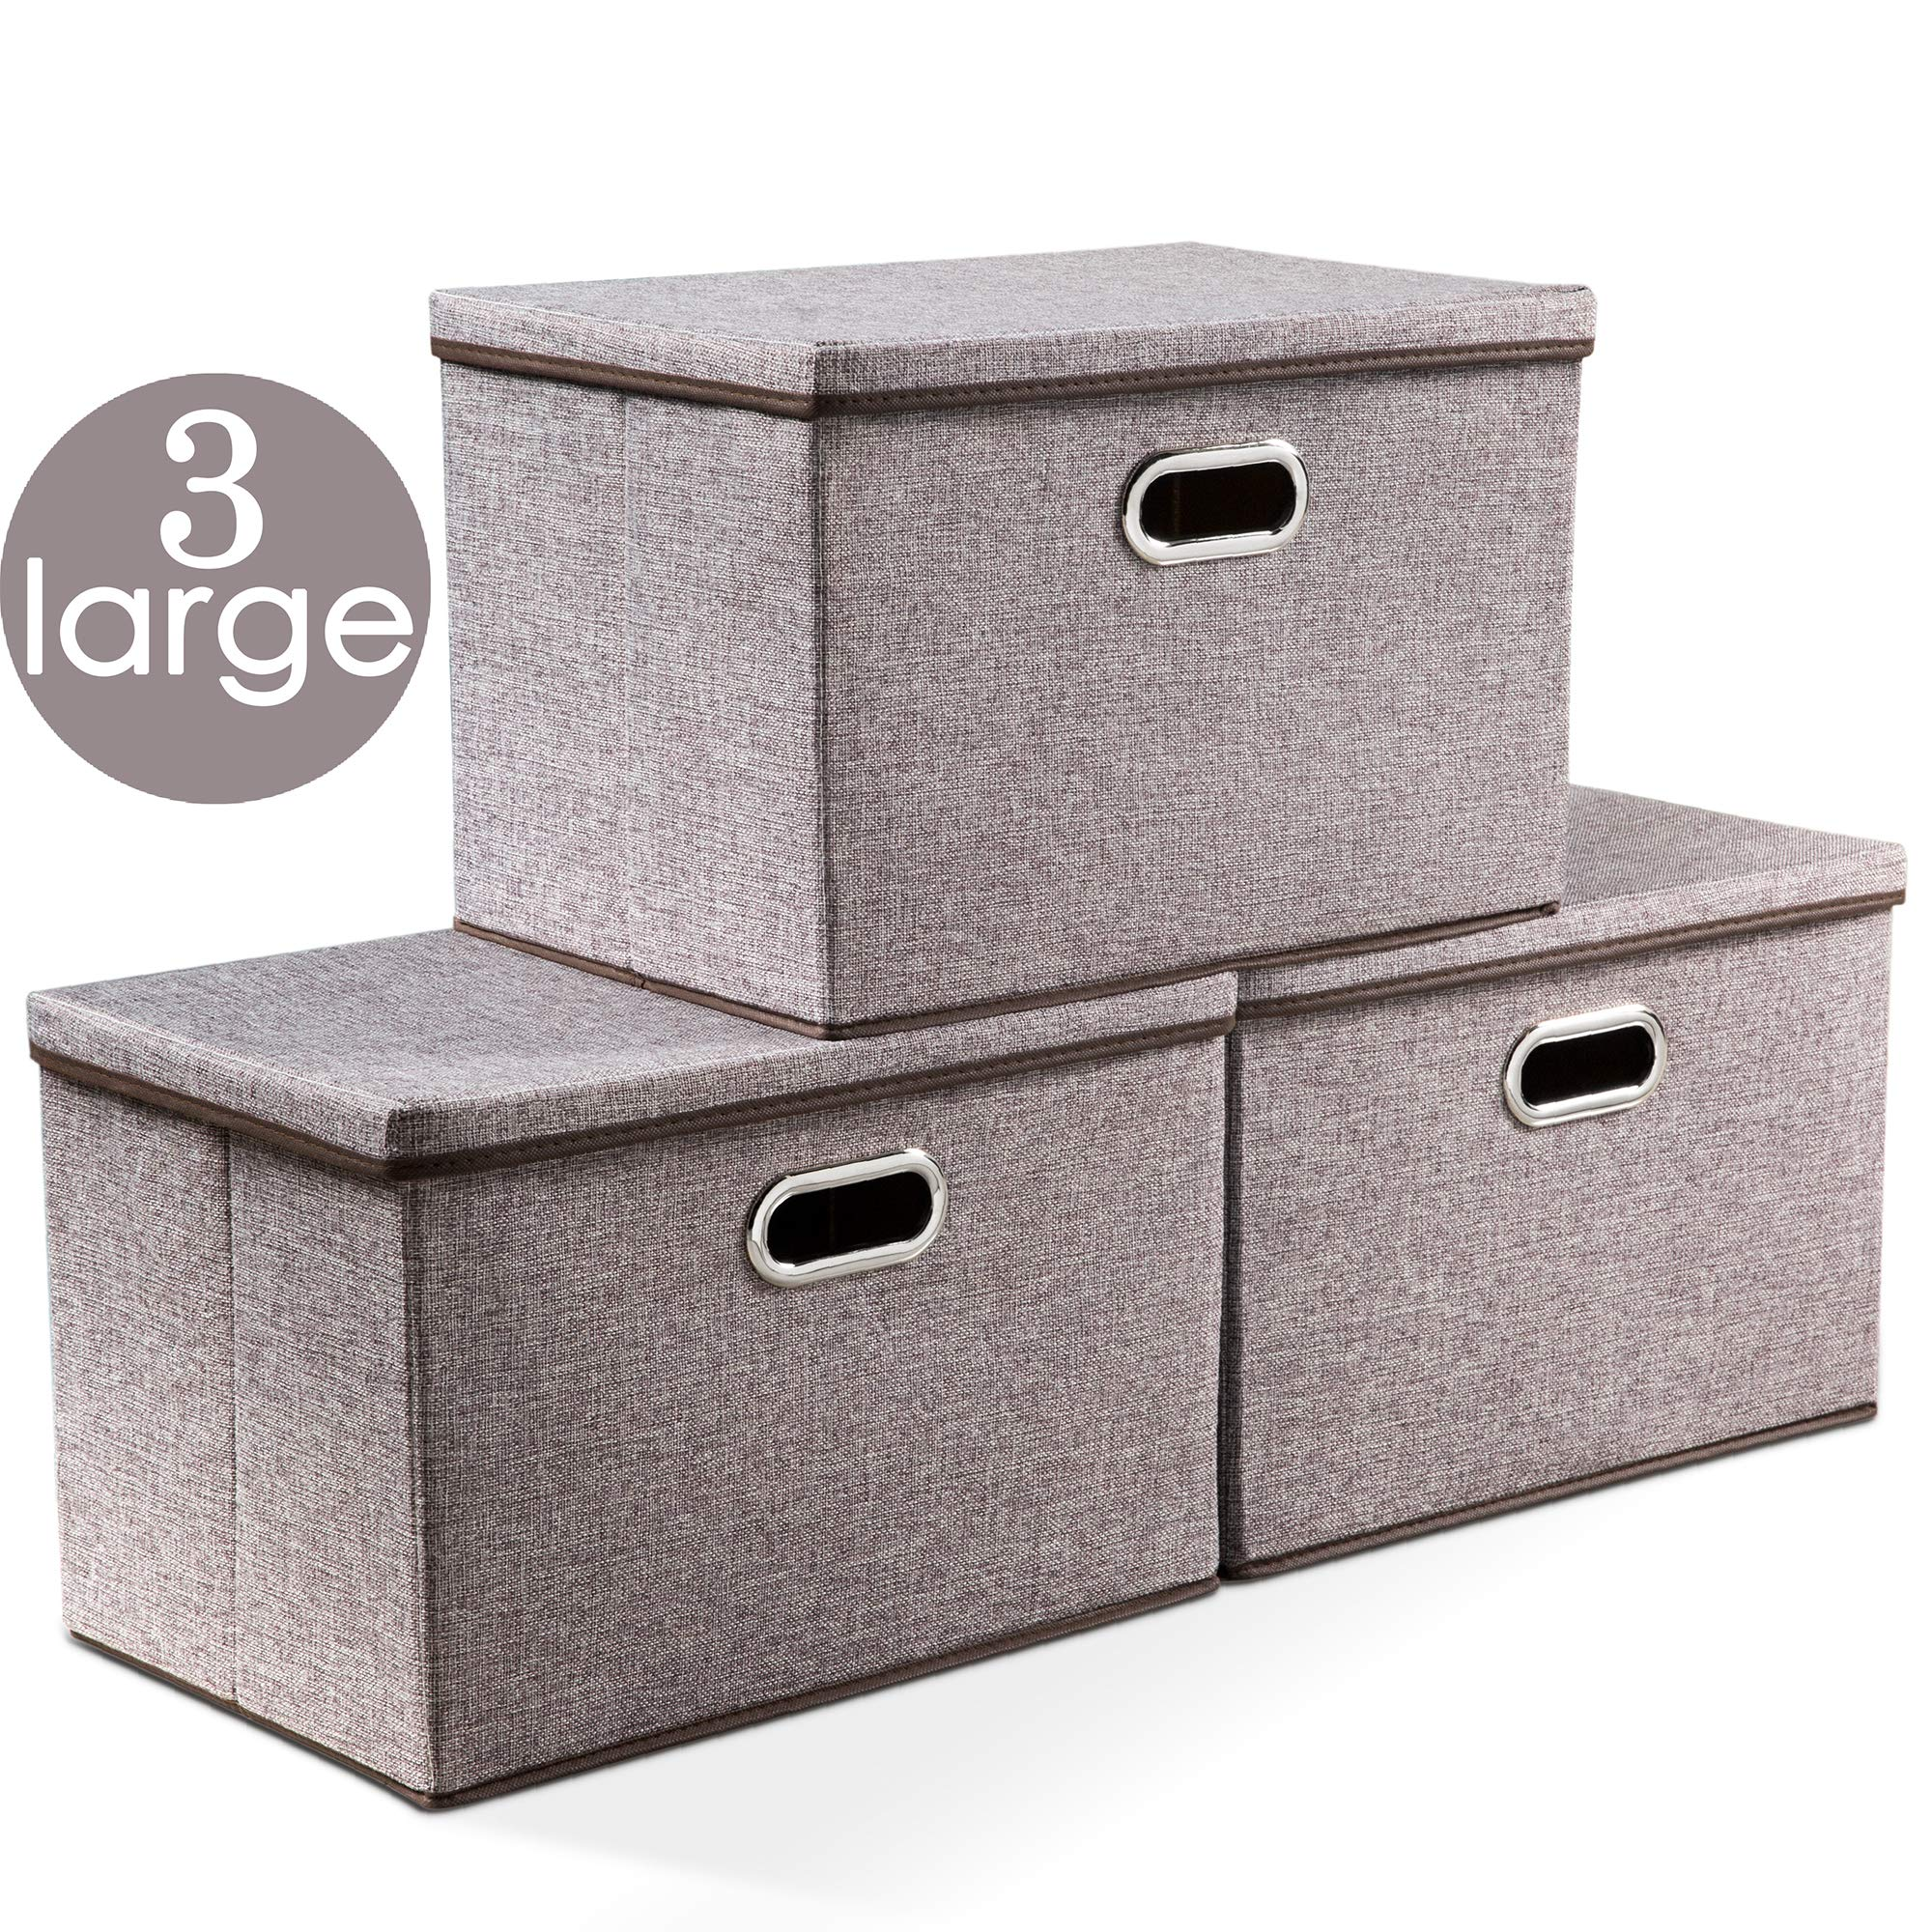 Prandom Large Collapsible Storage Bins with Lids [3-Pack] Linen Fabric Foldable Storage Boxes Organizer Containers Baskets Cube with Cover for Home Bedroom Closet Office Nursery (17.7x11.8x11.8) by Prandom